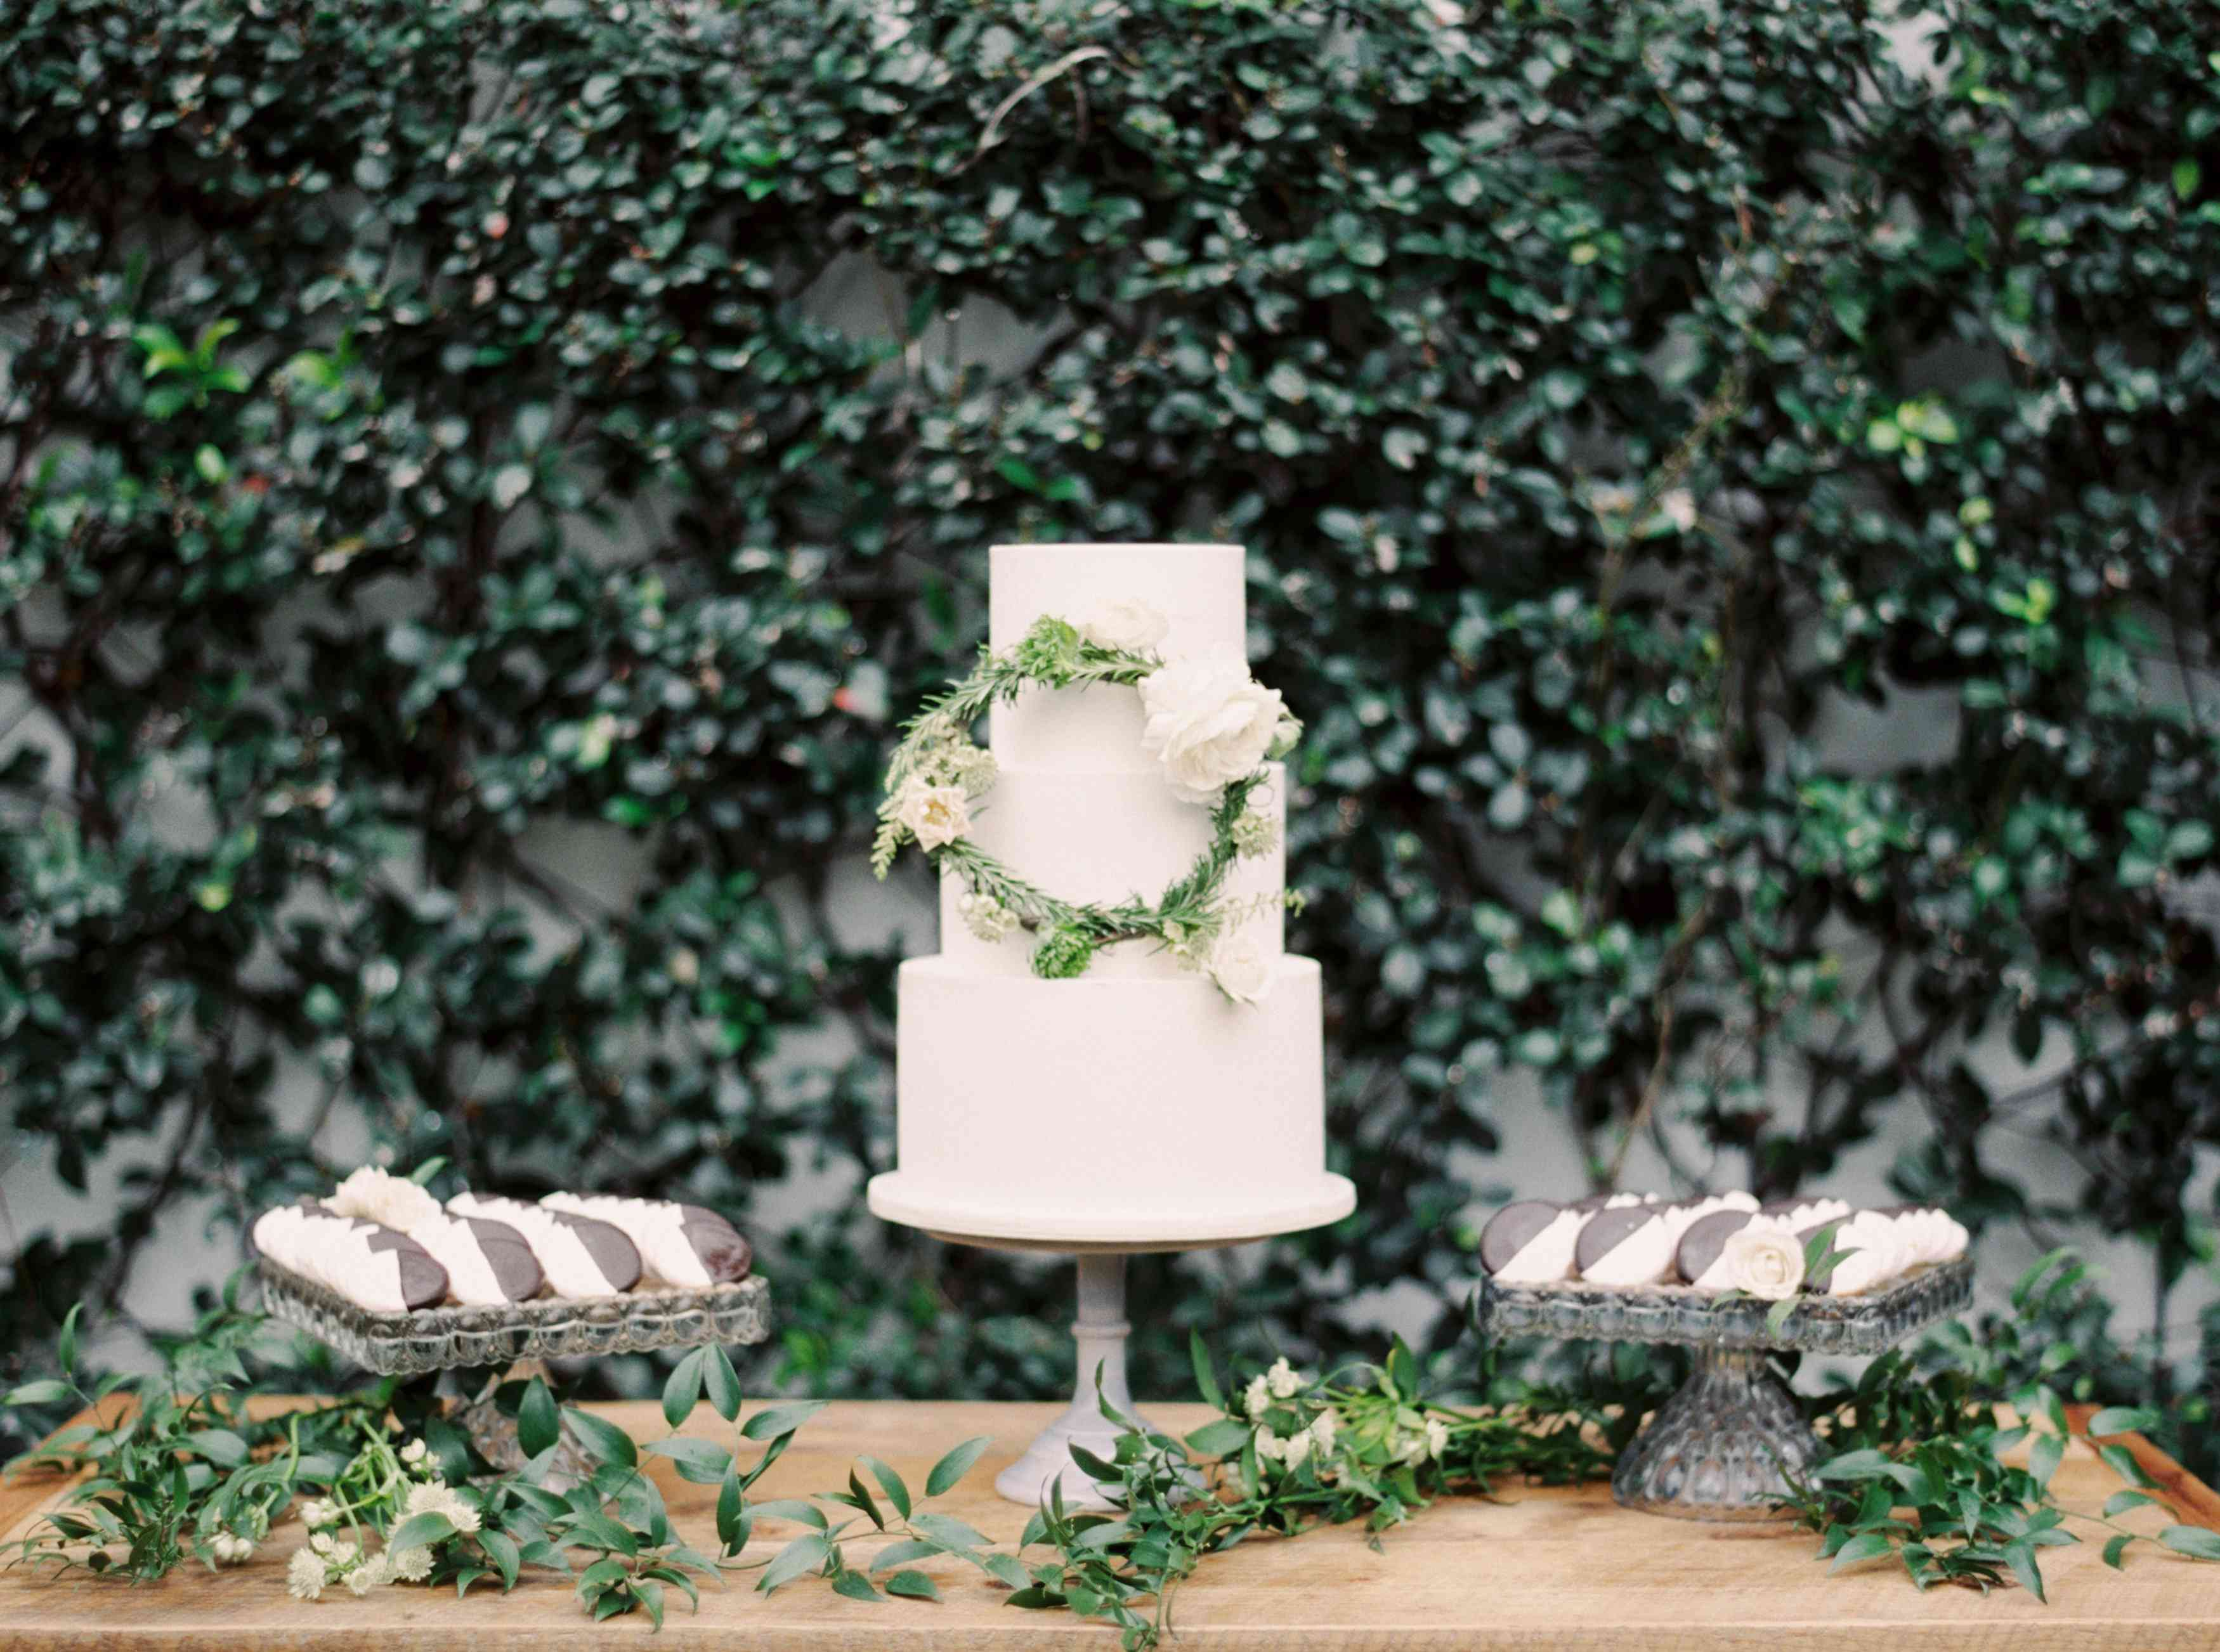 White Wedding Cake with Floral Wreath